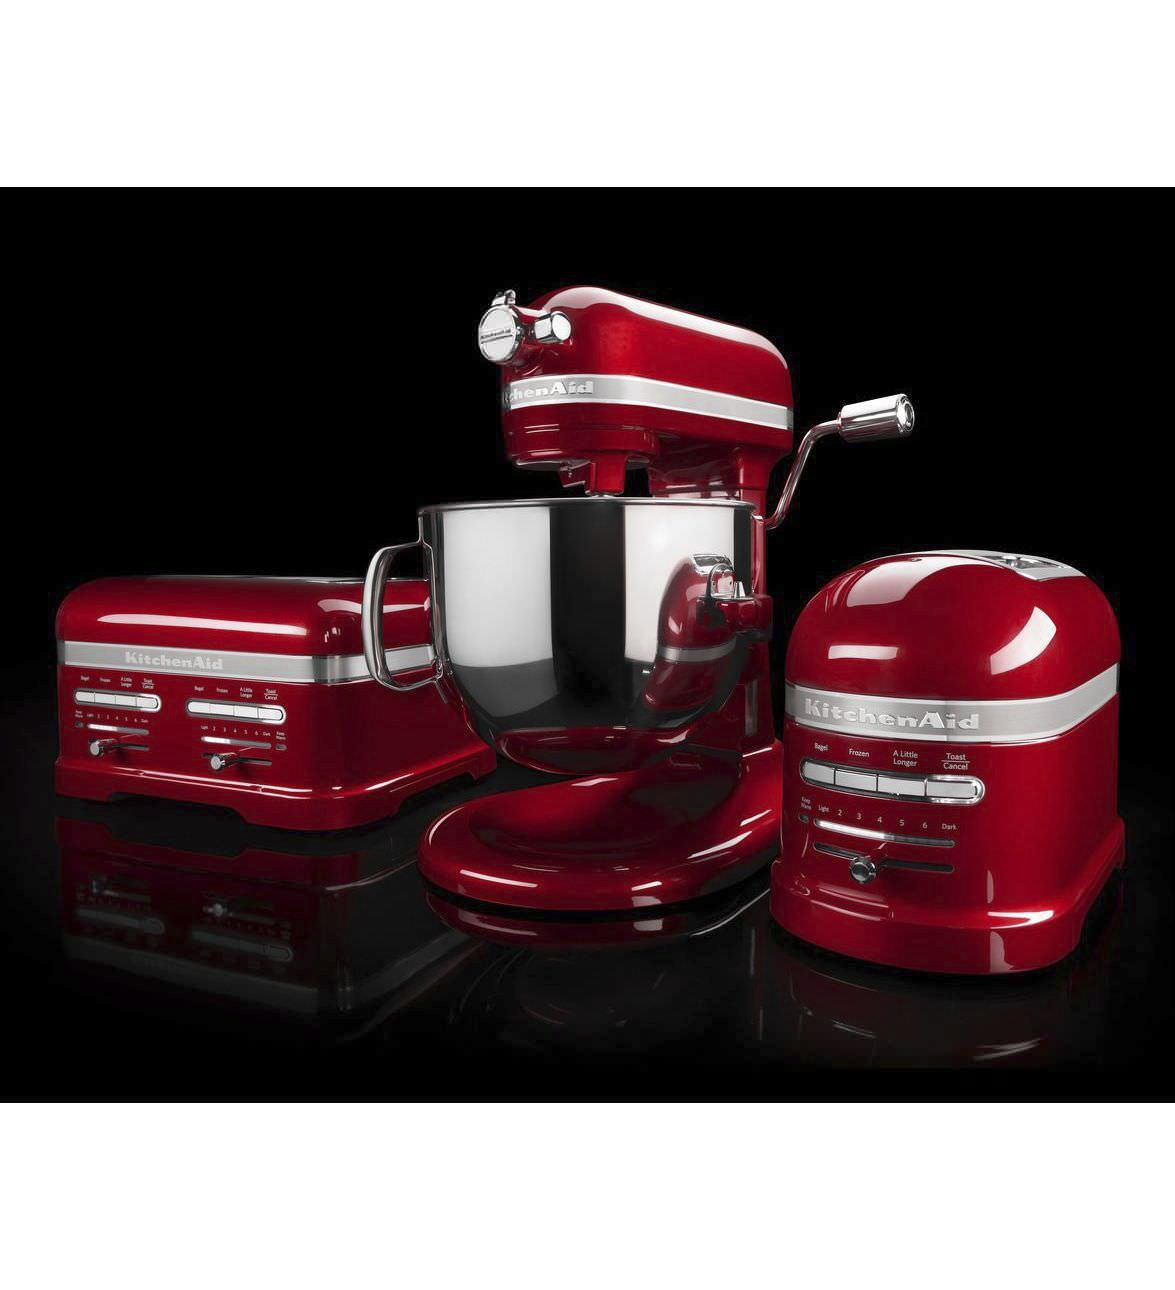 ... 4 Slice Toaster KMT4203 KitchenAid ...